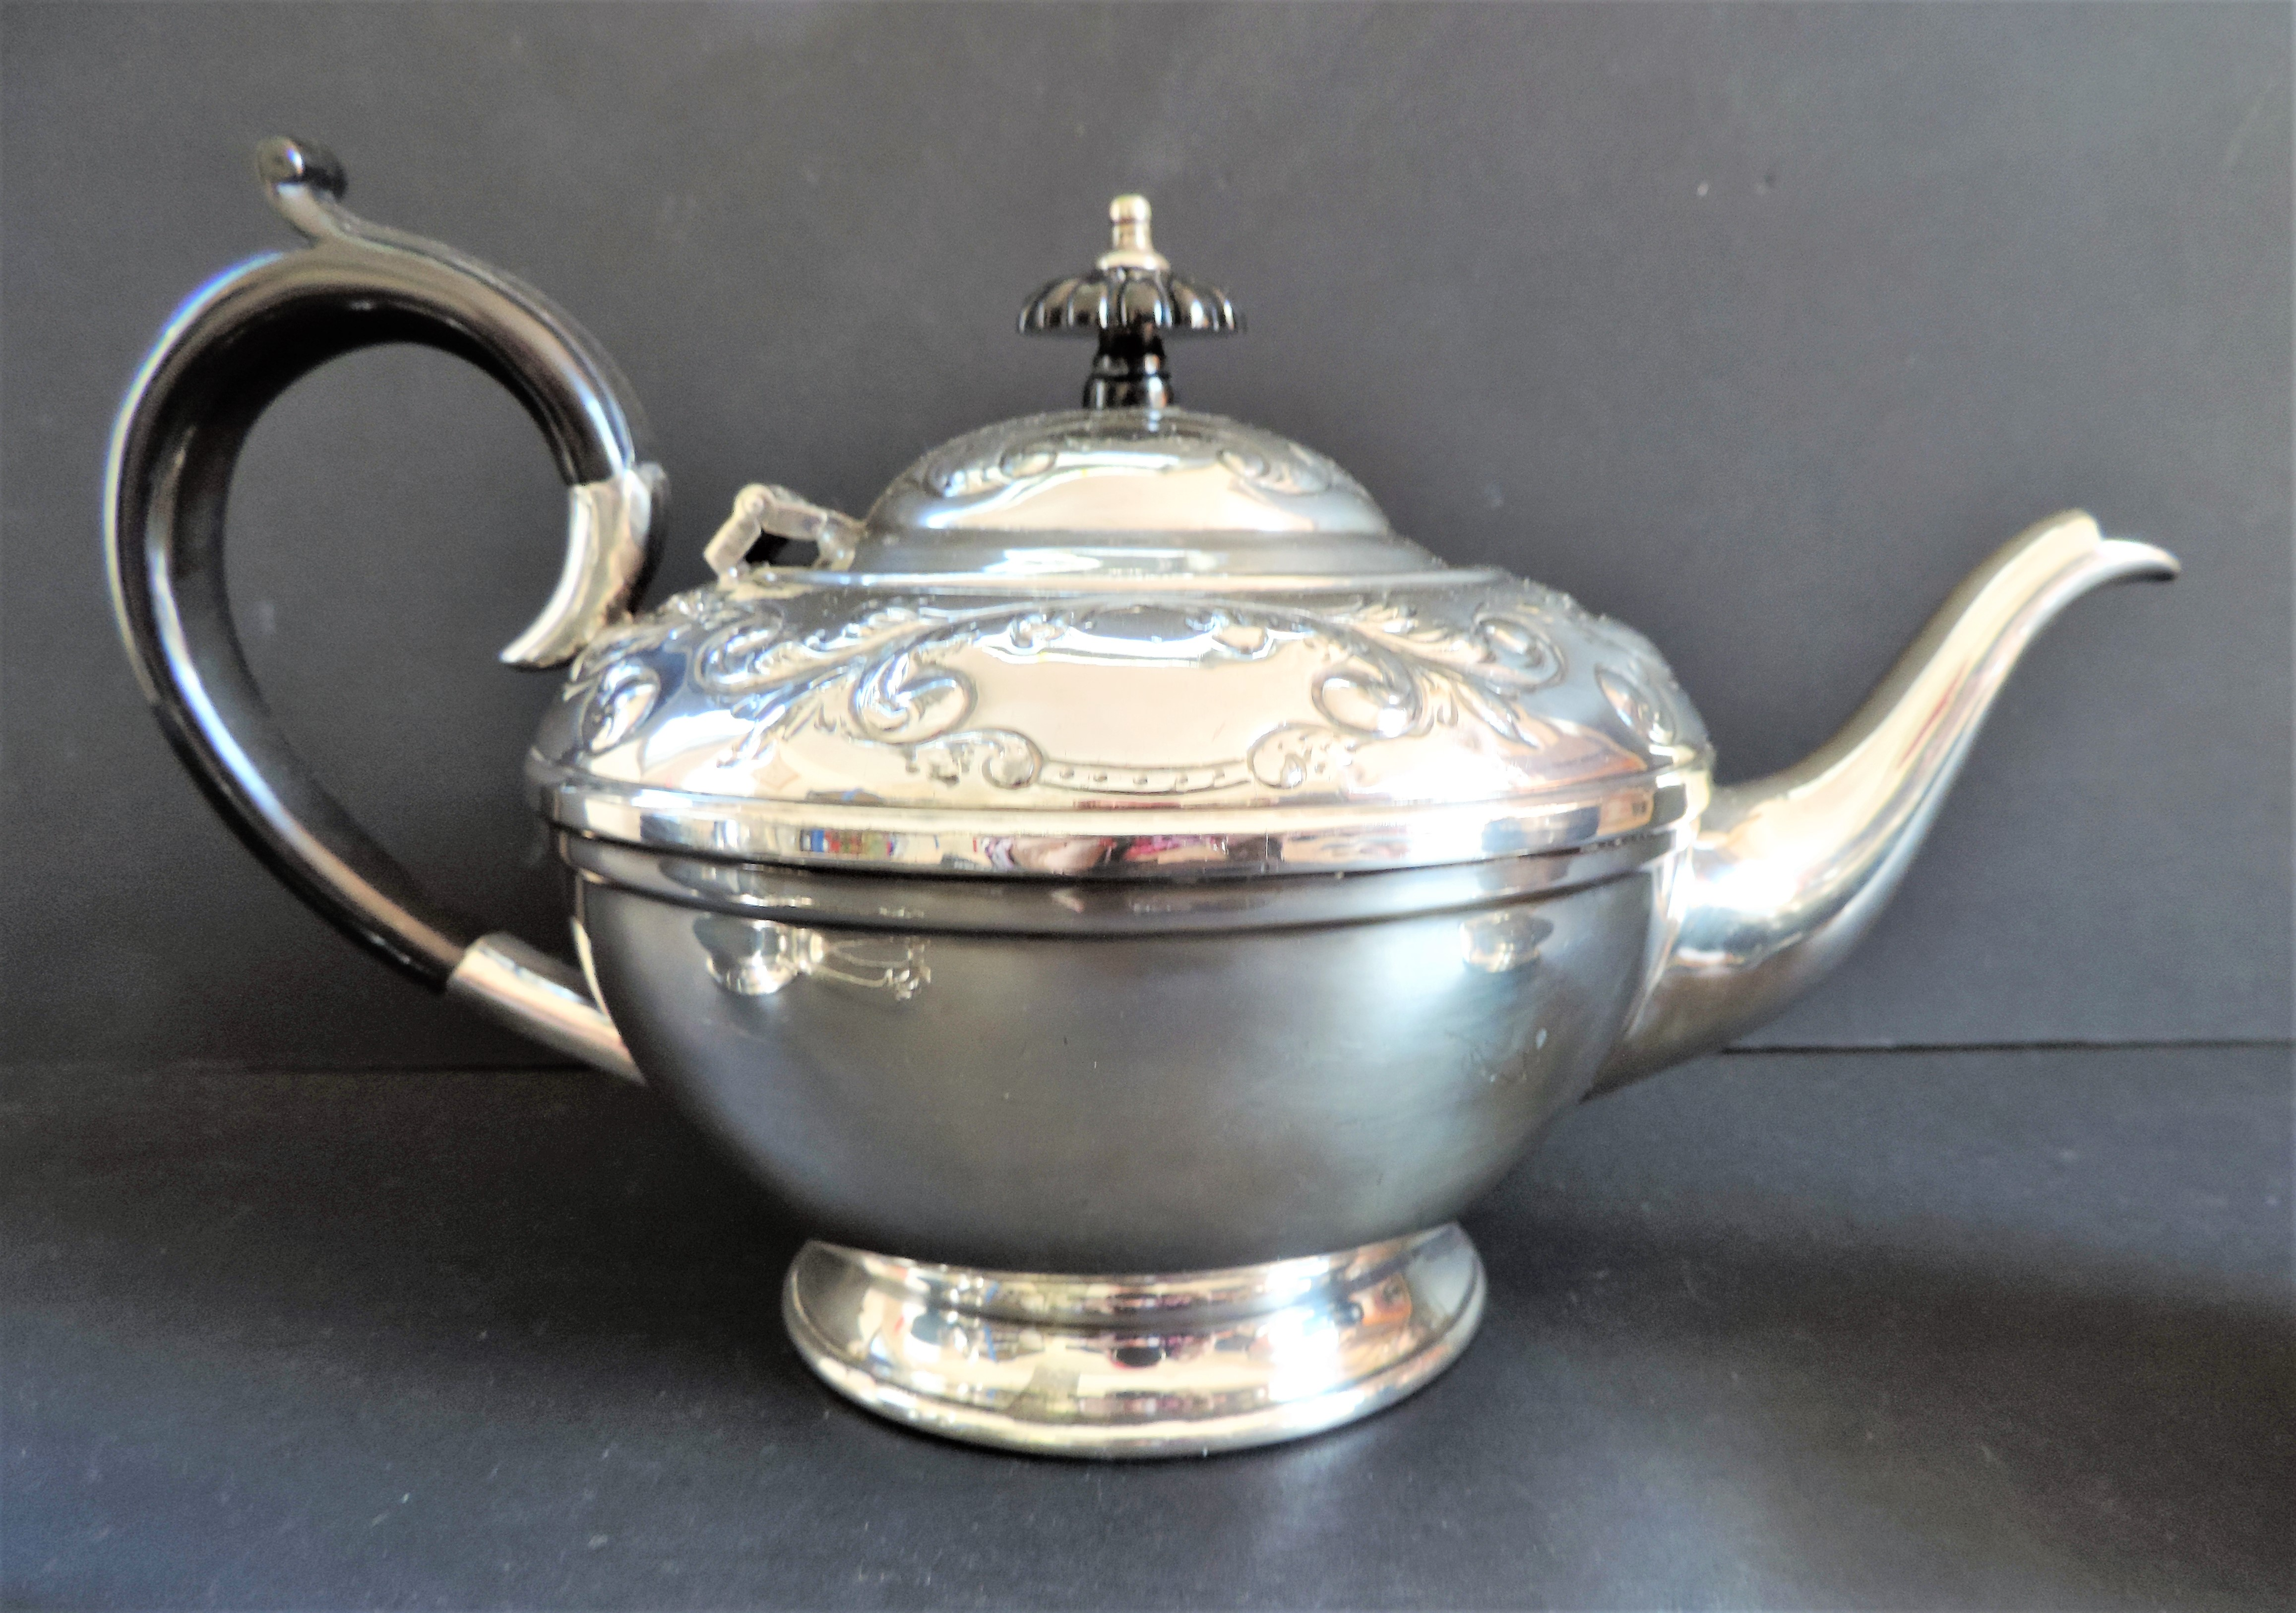 Antique Silver Plated Repousse Decorated Tea Set - Image 6 of 7